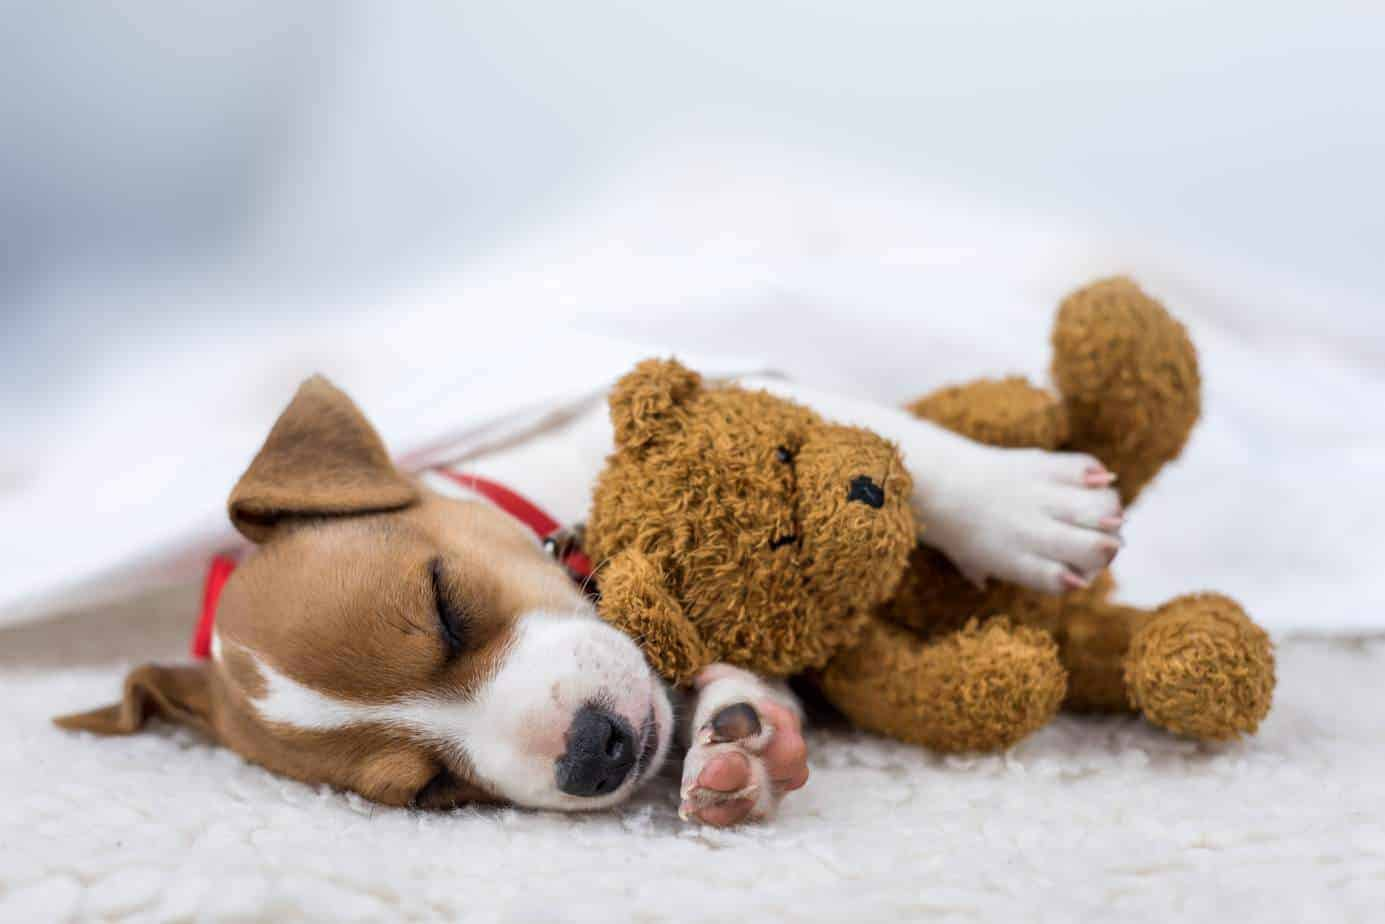 Science says sleep with your dog. Jack Russell terrier snuggles with his teddy bear.